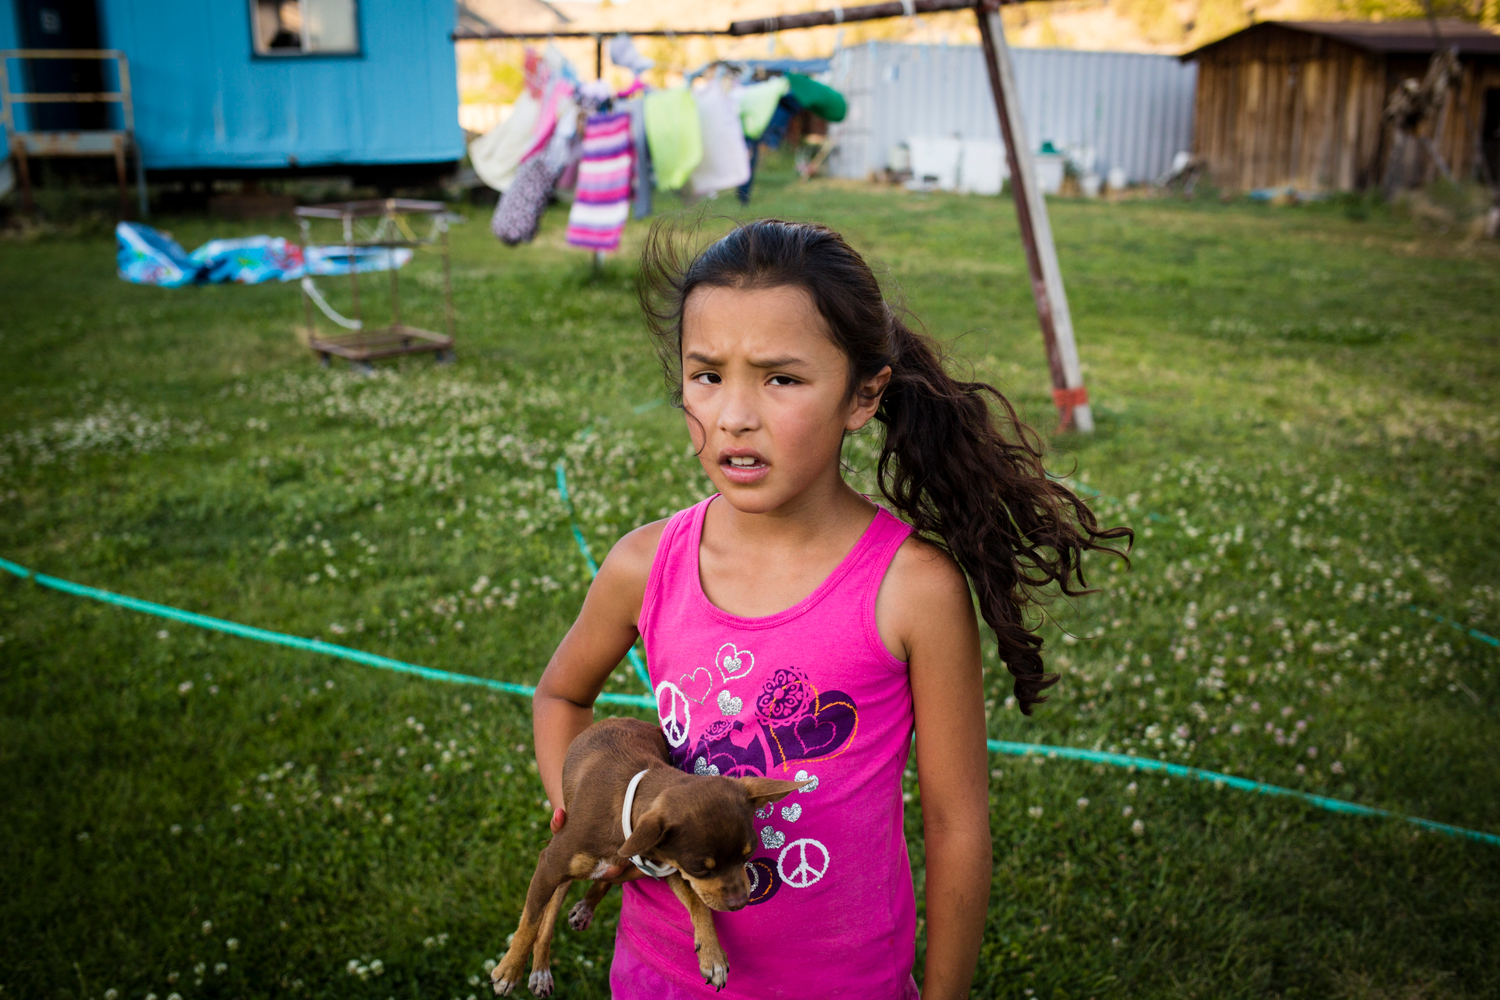 Kahmussa Green, 7, plays in the yard of her home in Warm Springs, OR. Adopted by her mother, Charlie Green, her name means respect. Born to an addicted mother, this lover of ballet spent the first days of her life going through withdrawal. Project Dayshoot.